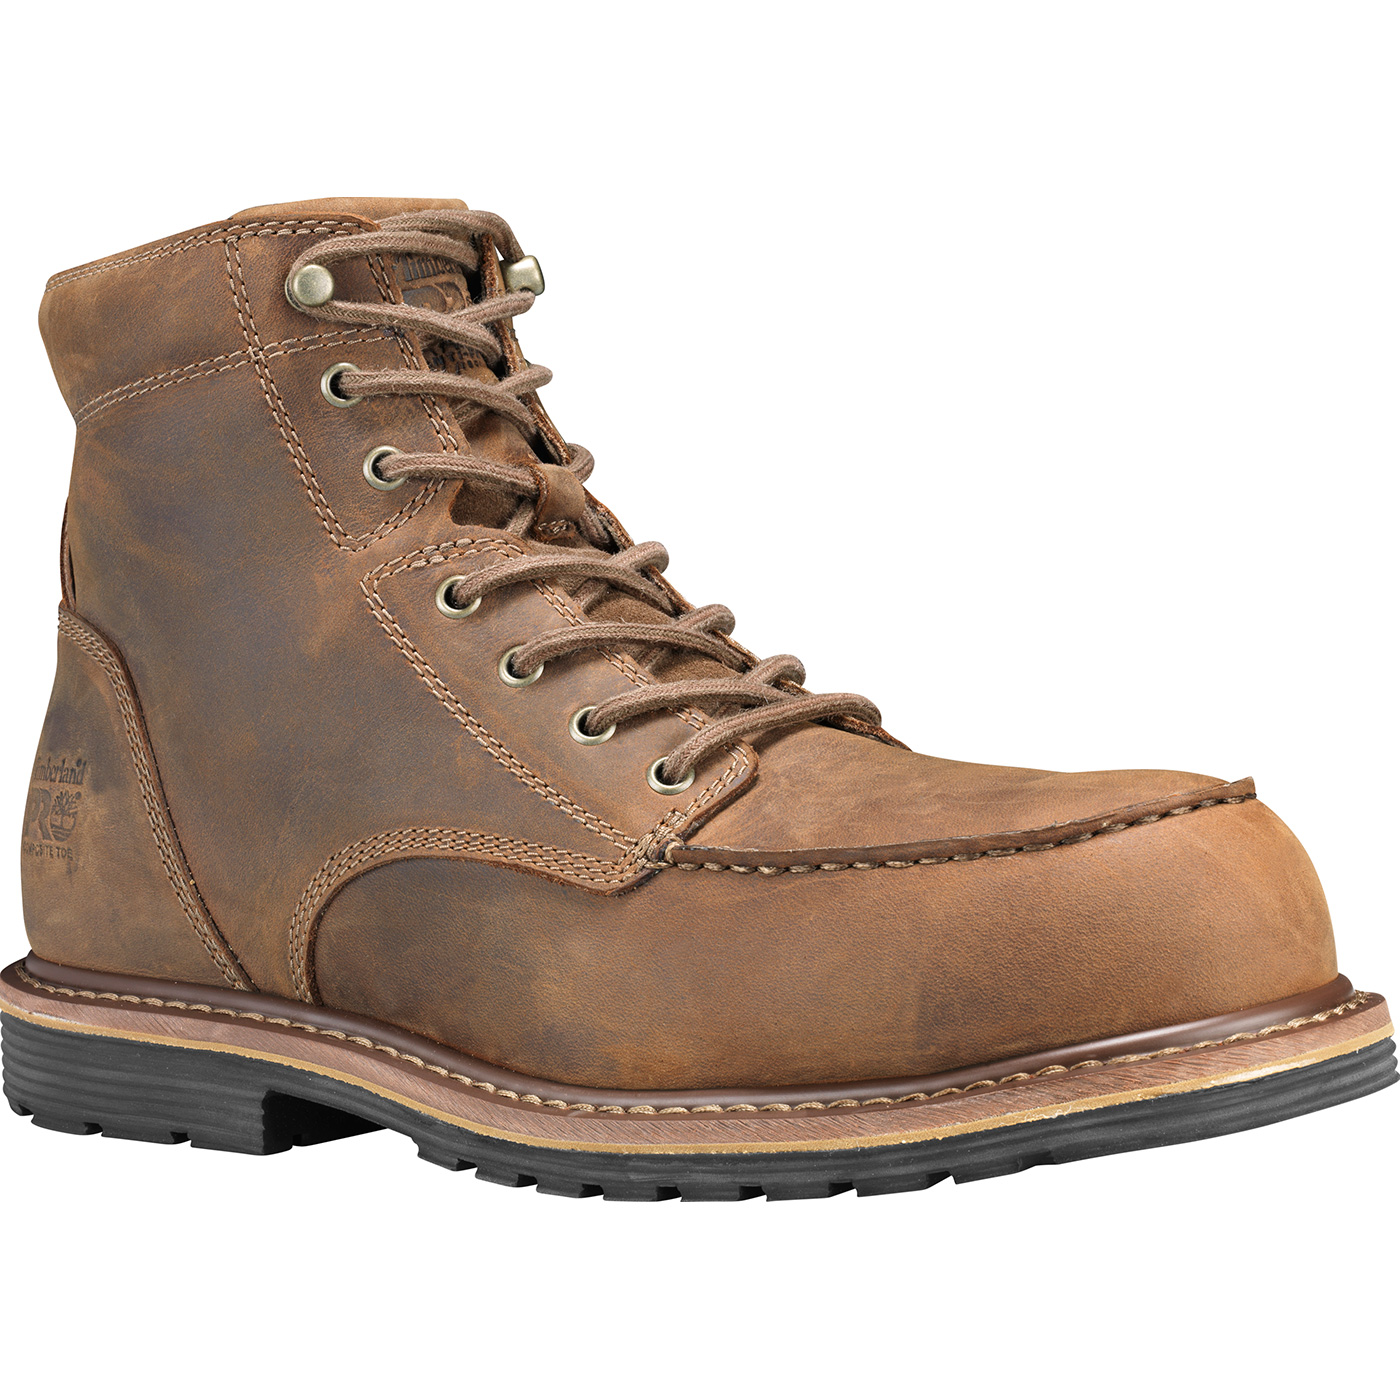 e6cd0b1b38 Timberland PRO Millworks Moc Toe Men's 6 inch Composite Toe Electrical  Hazard Leather Work BootTimberland PRO Millworks Moc Toe Men's 6 inch  Composite Toe ...